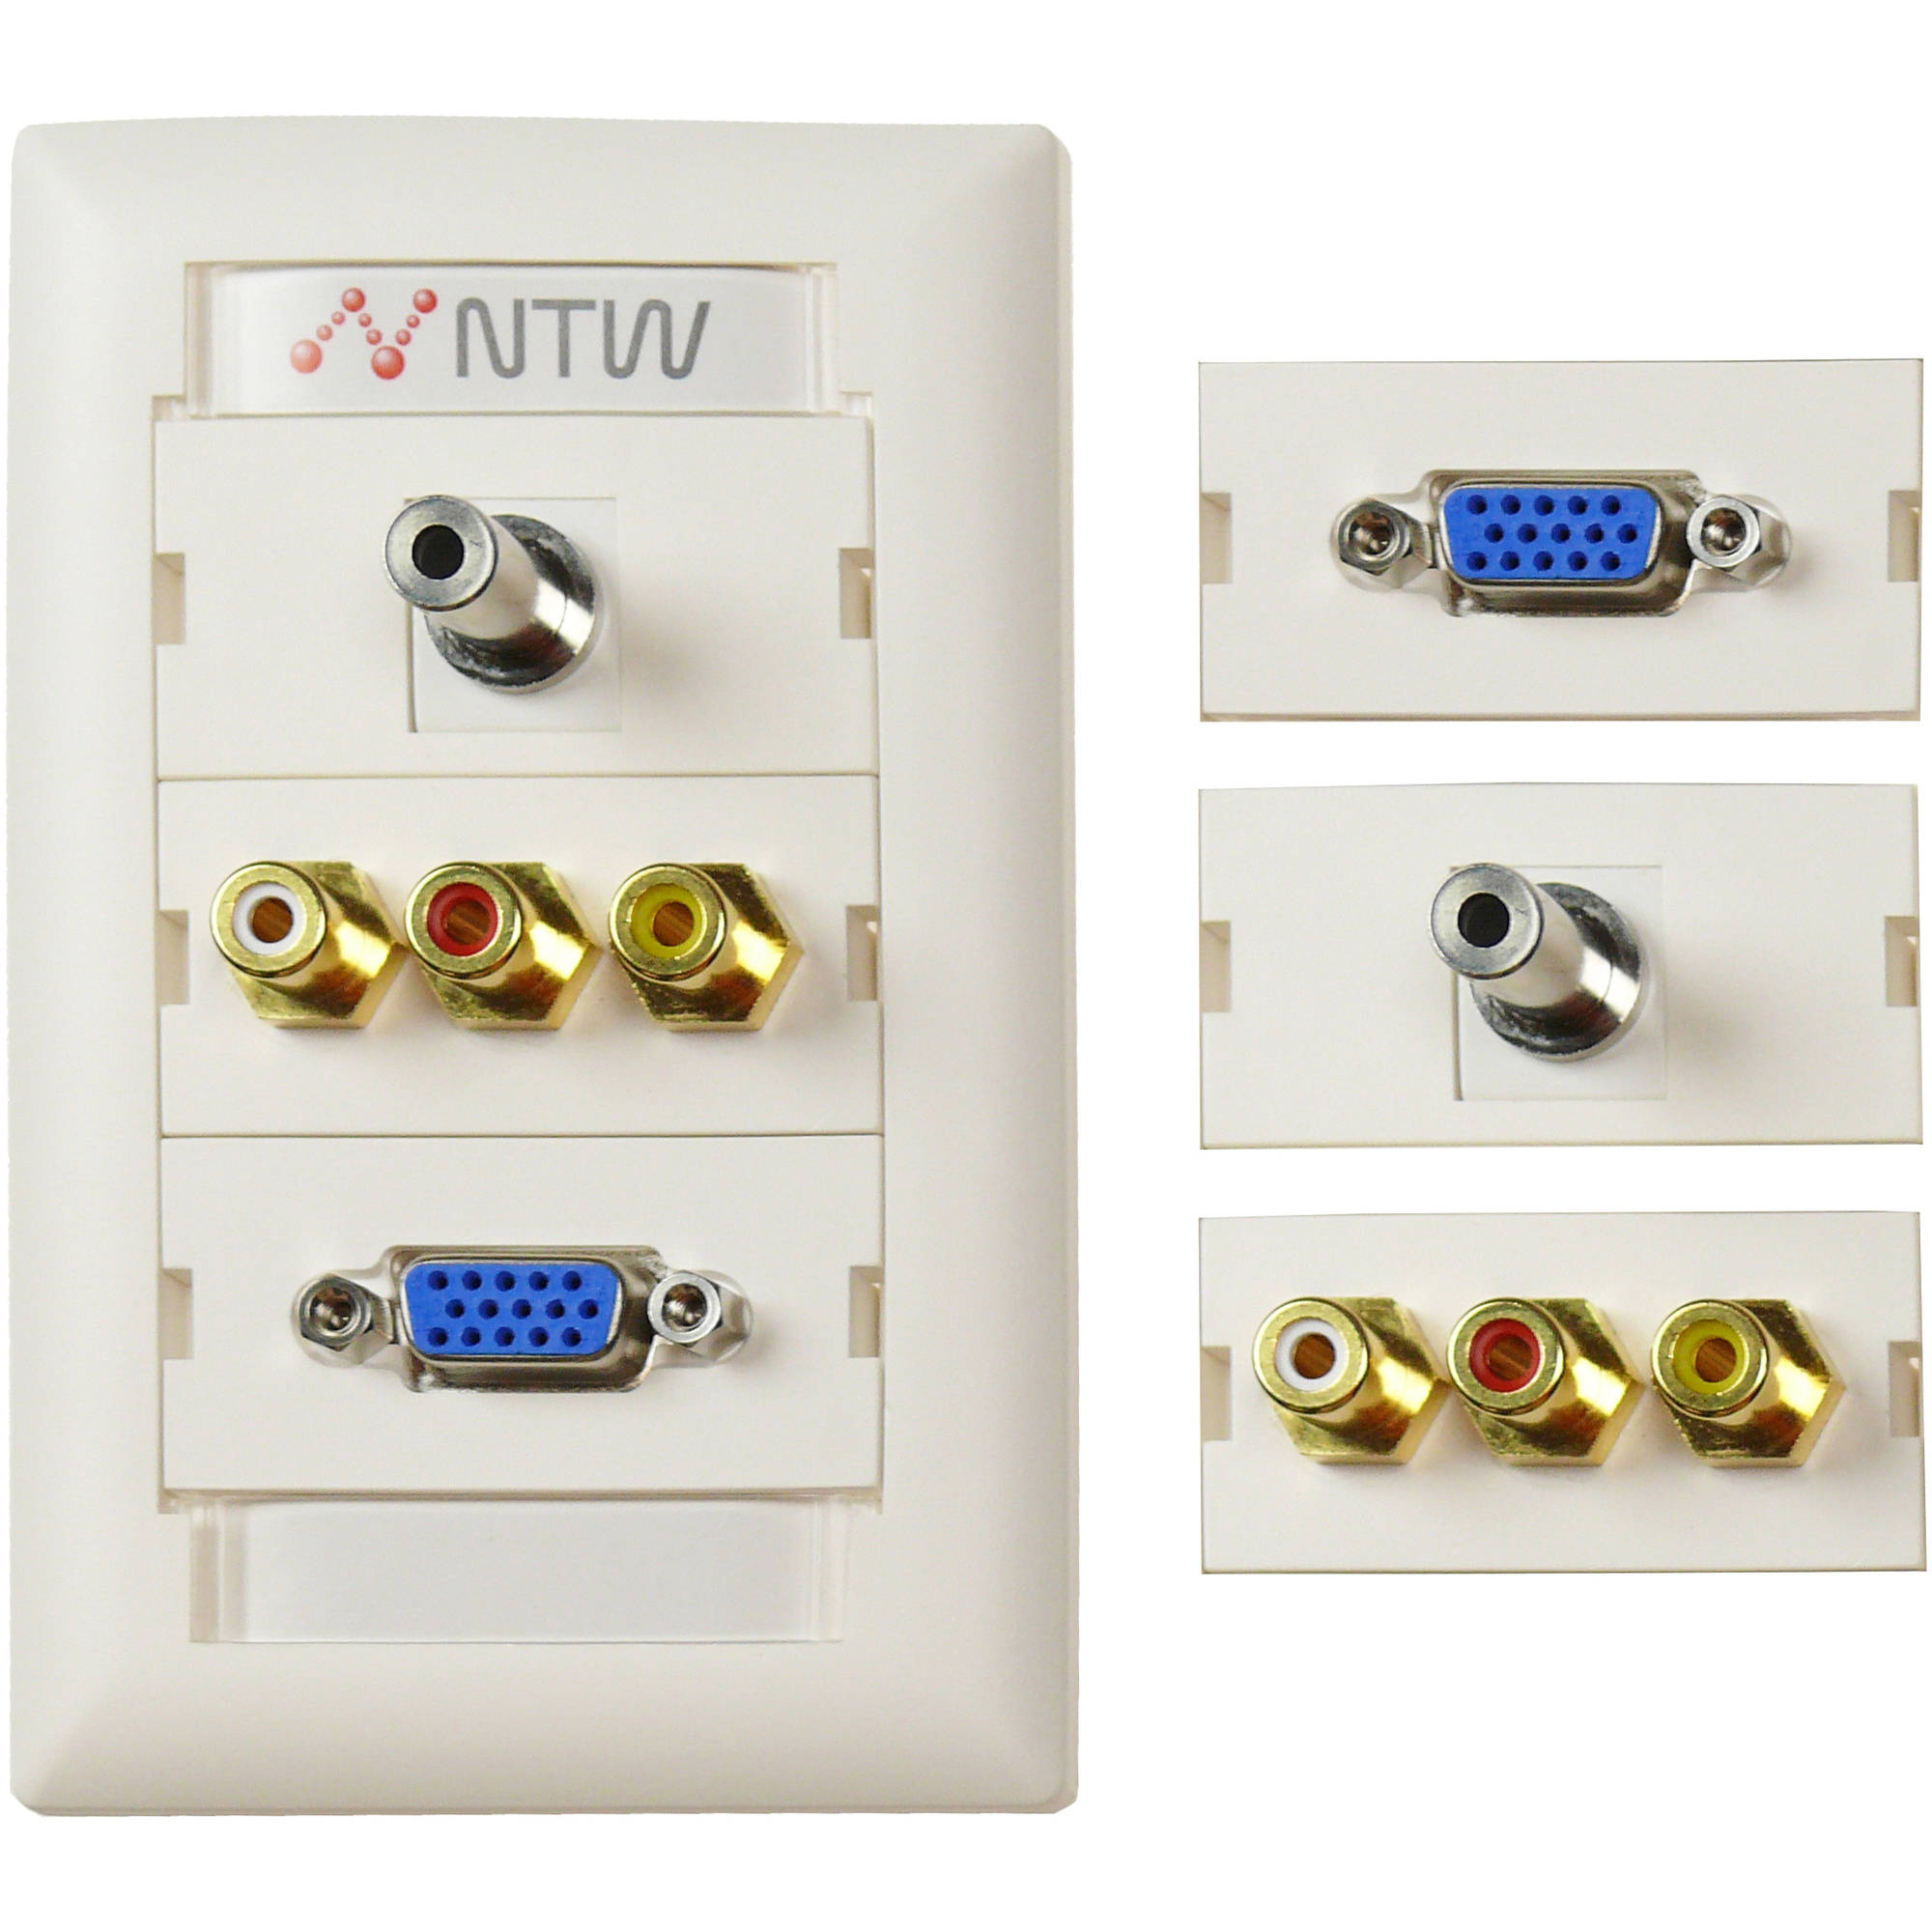 NTW Customizable UniMedia Wallplate and ID Tag with VGA, 3.5mm Audio, Composite Video and RCA Stereo Audio Pass-Through